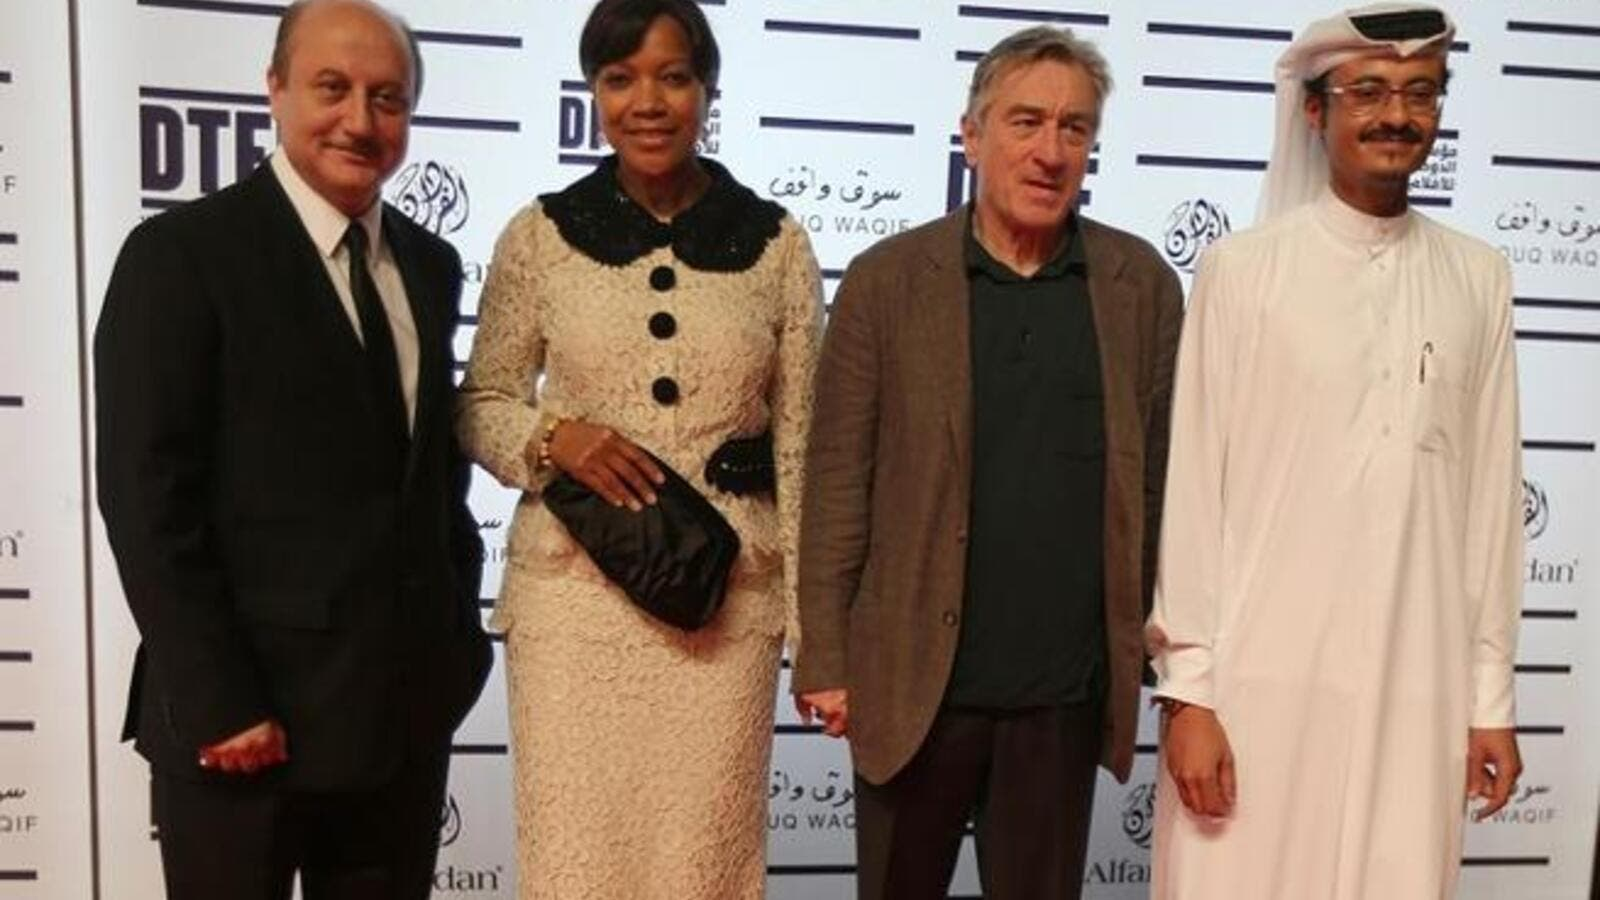 US actor Robert De Niro (2nd L) founder of New York's Tribeca Film Festival, poses for a photograph along side his wife Grace Hightower De Niro and Indian actor Anupam Kher (L) and Doha Film Institute CEO Abdulaziz Bin Khalid Al-Khater (R) at the Doha Tribeca Film Festival in the Qatari capital. AFP